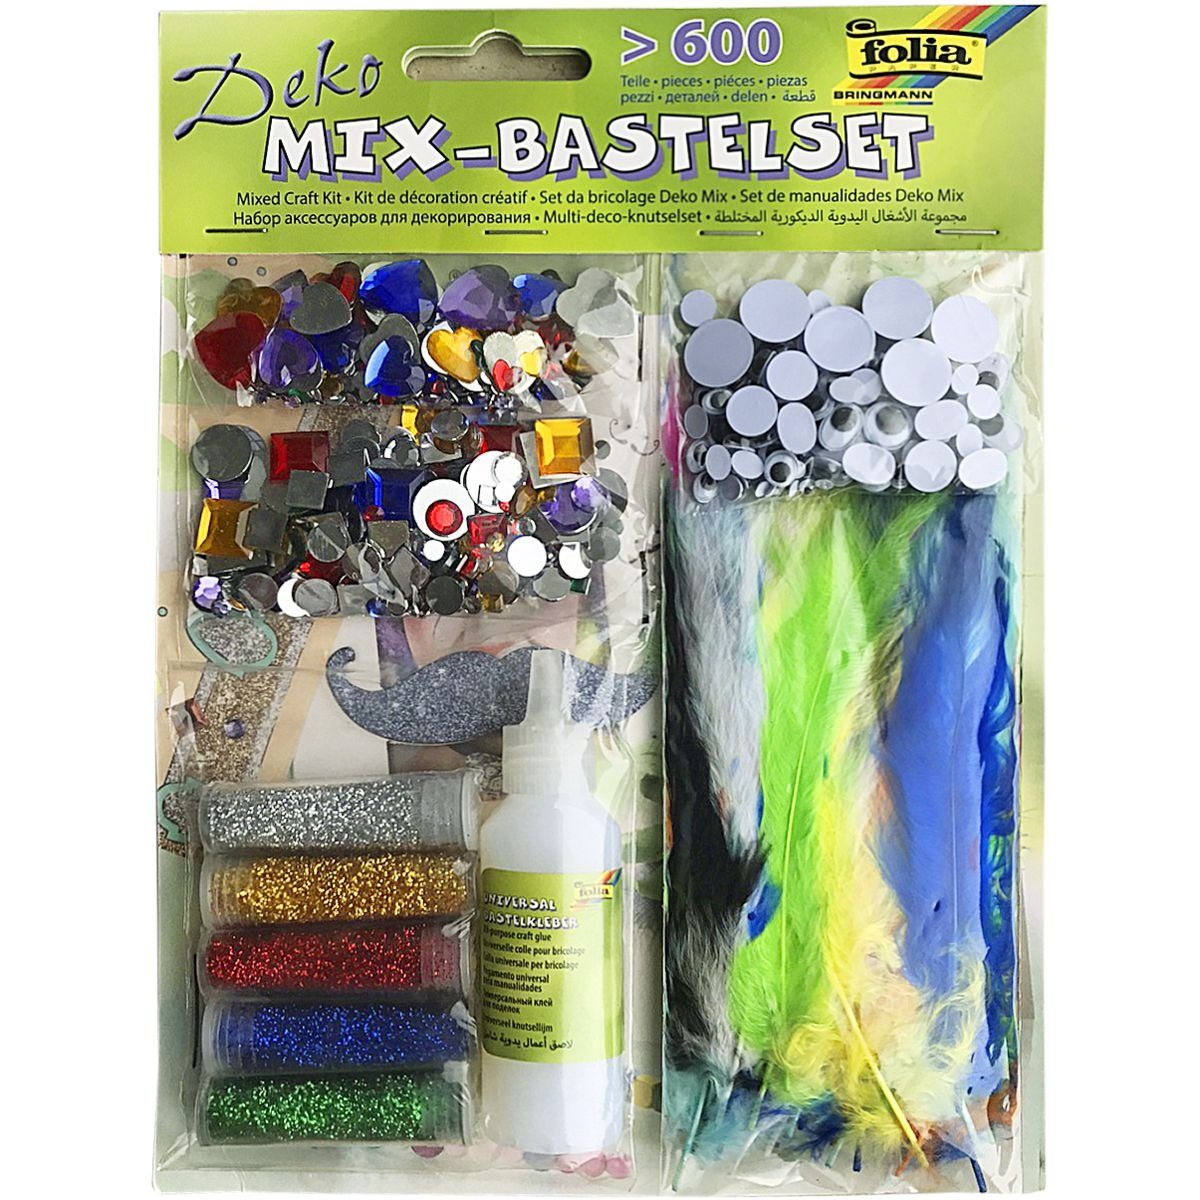 Folia Deko-Mix-Bastelset